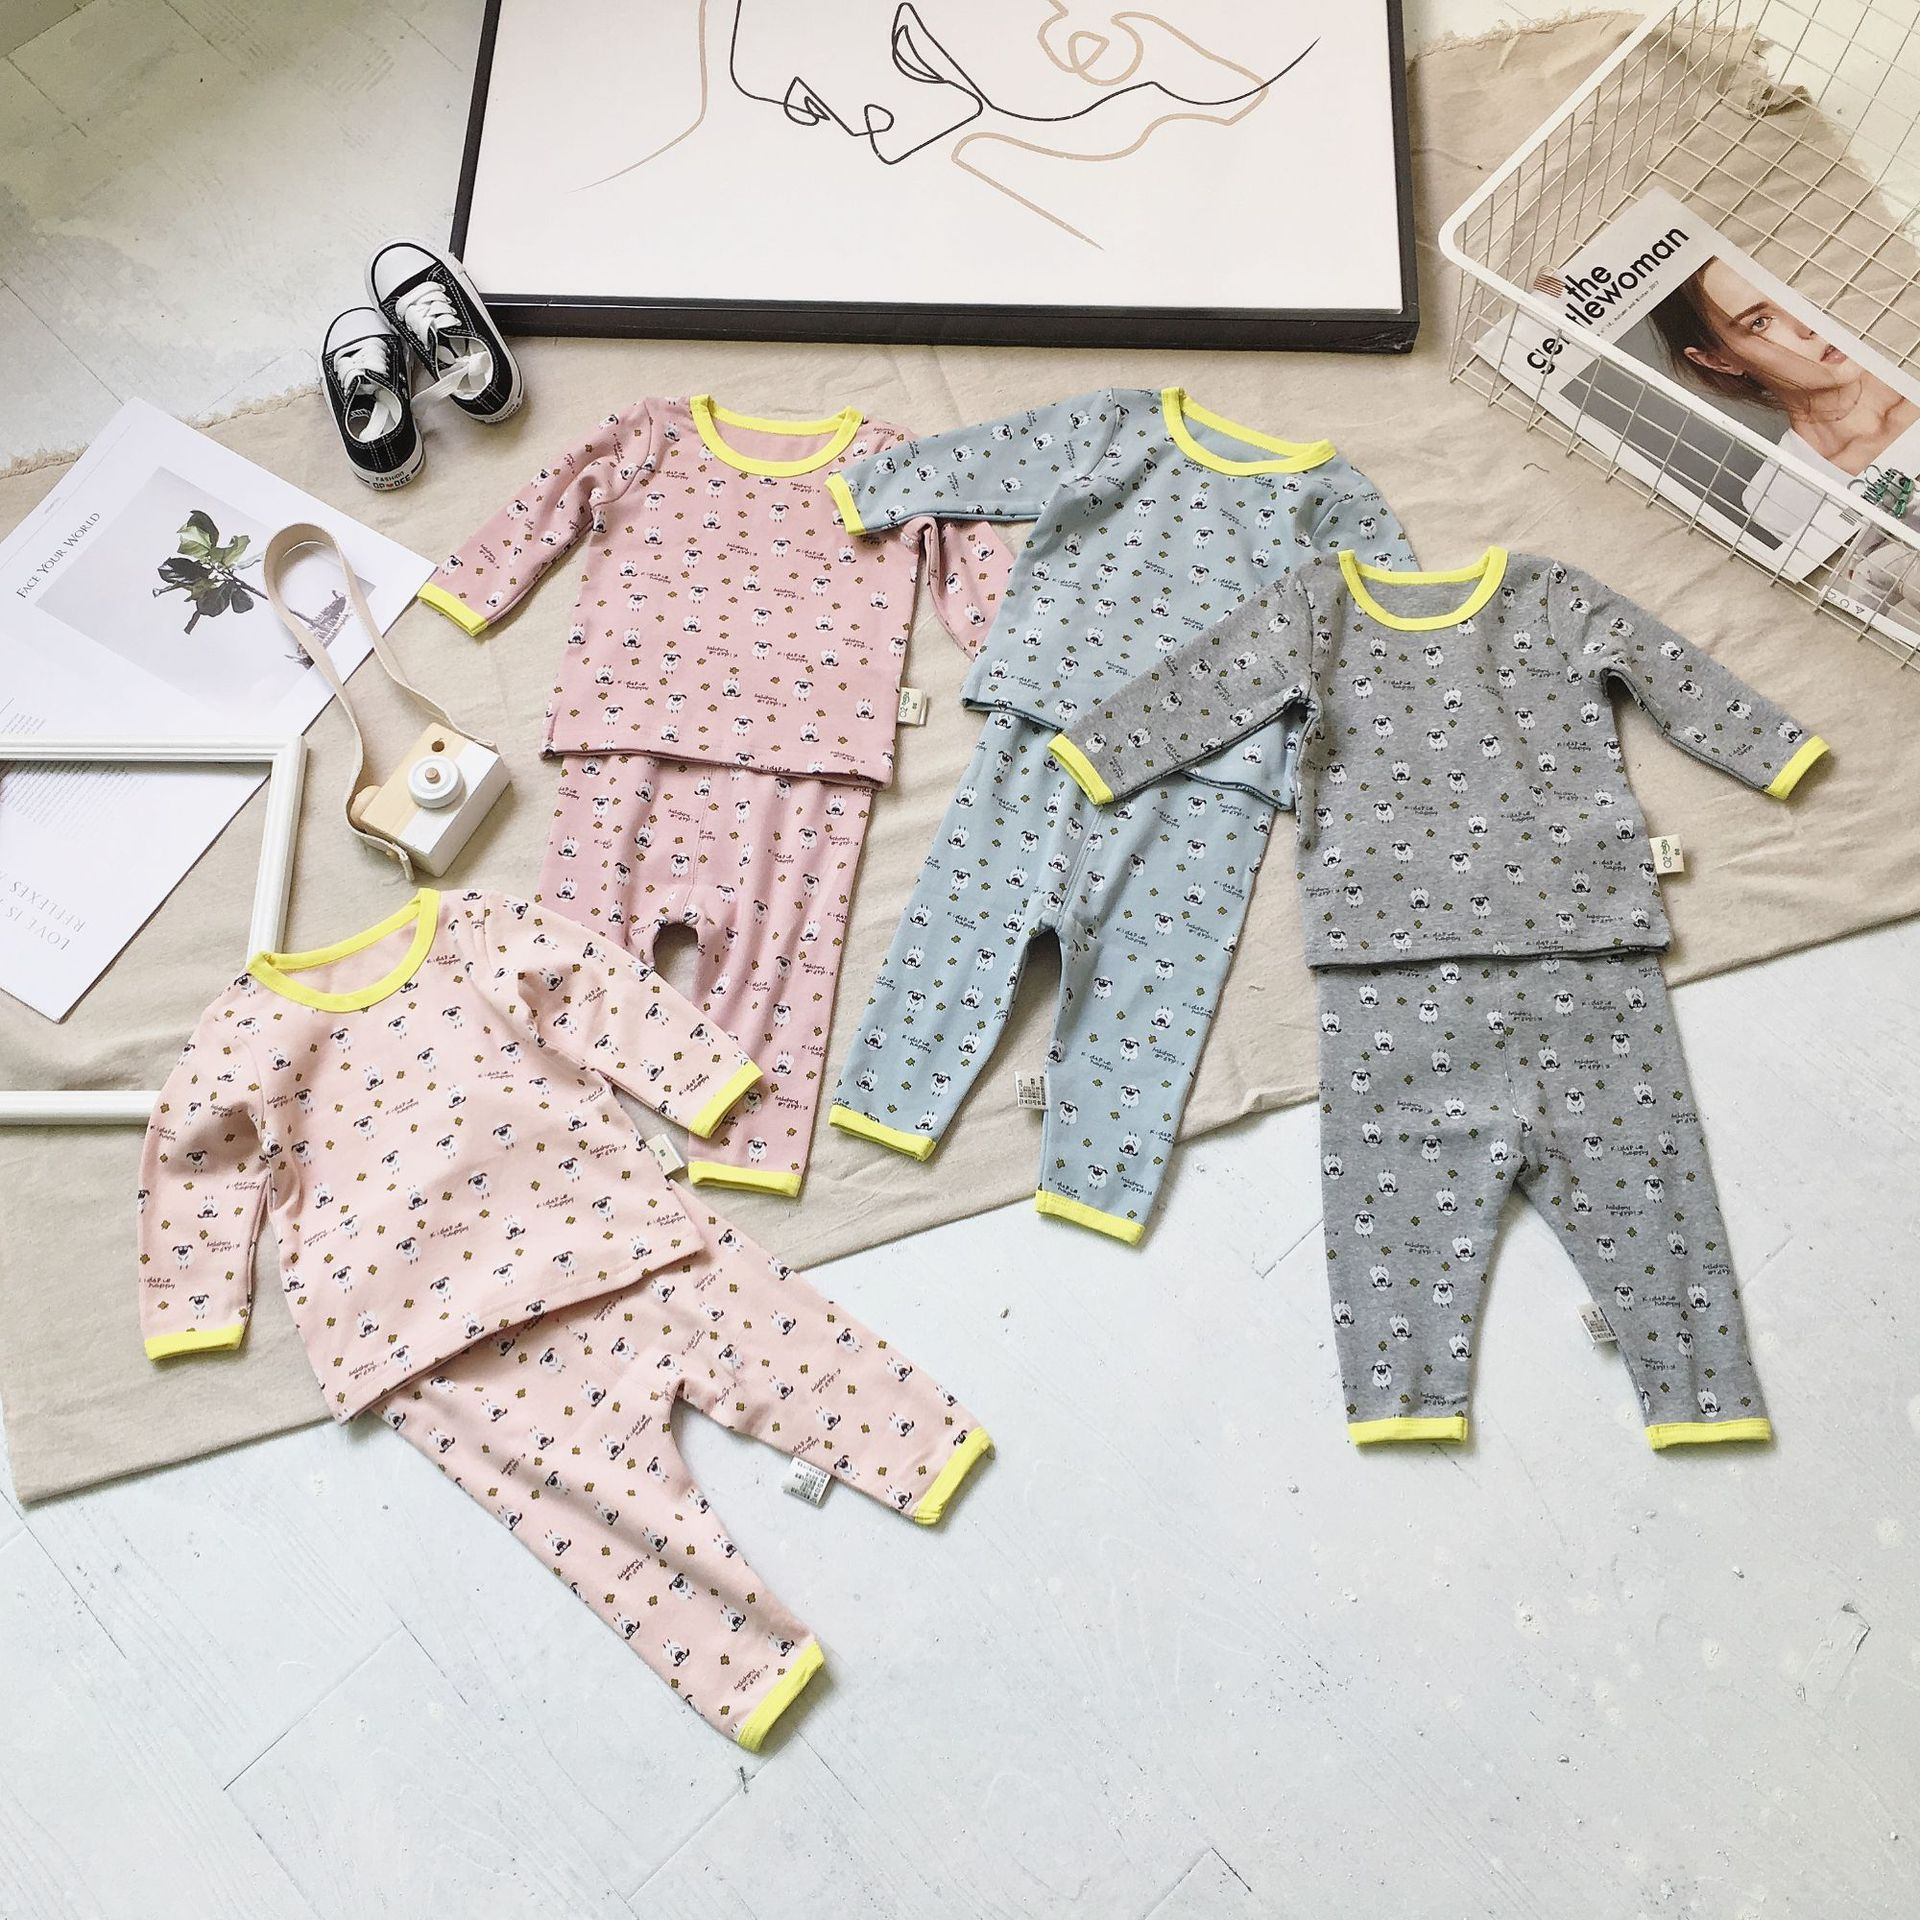 2019 Spring And Autumn New Style Infants Underwear Suit 1-3 Years Old Baby Tracksuit Baby Pajamas Boutique Class A